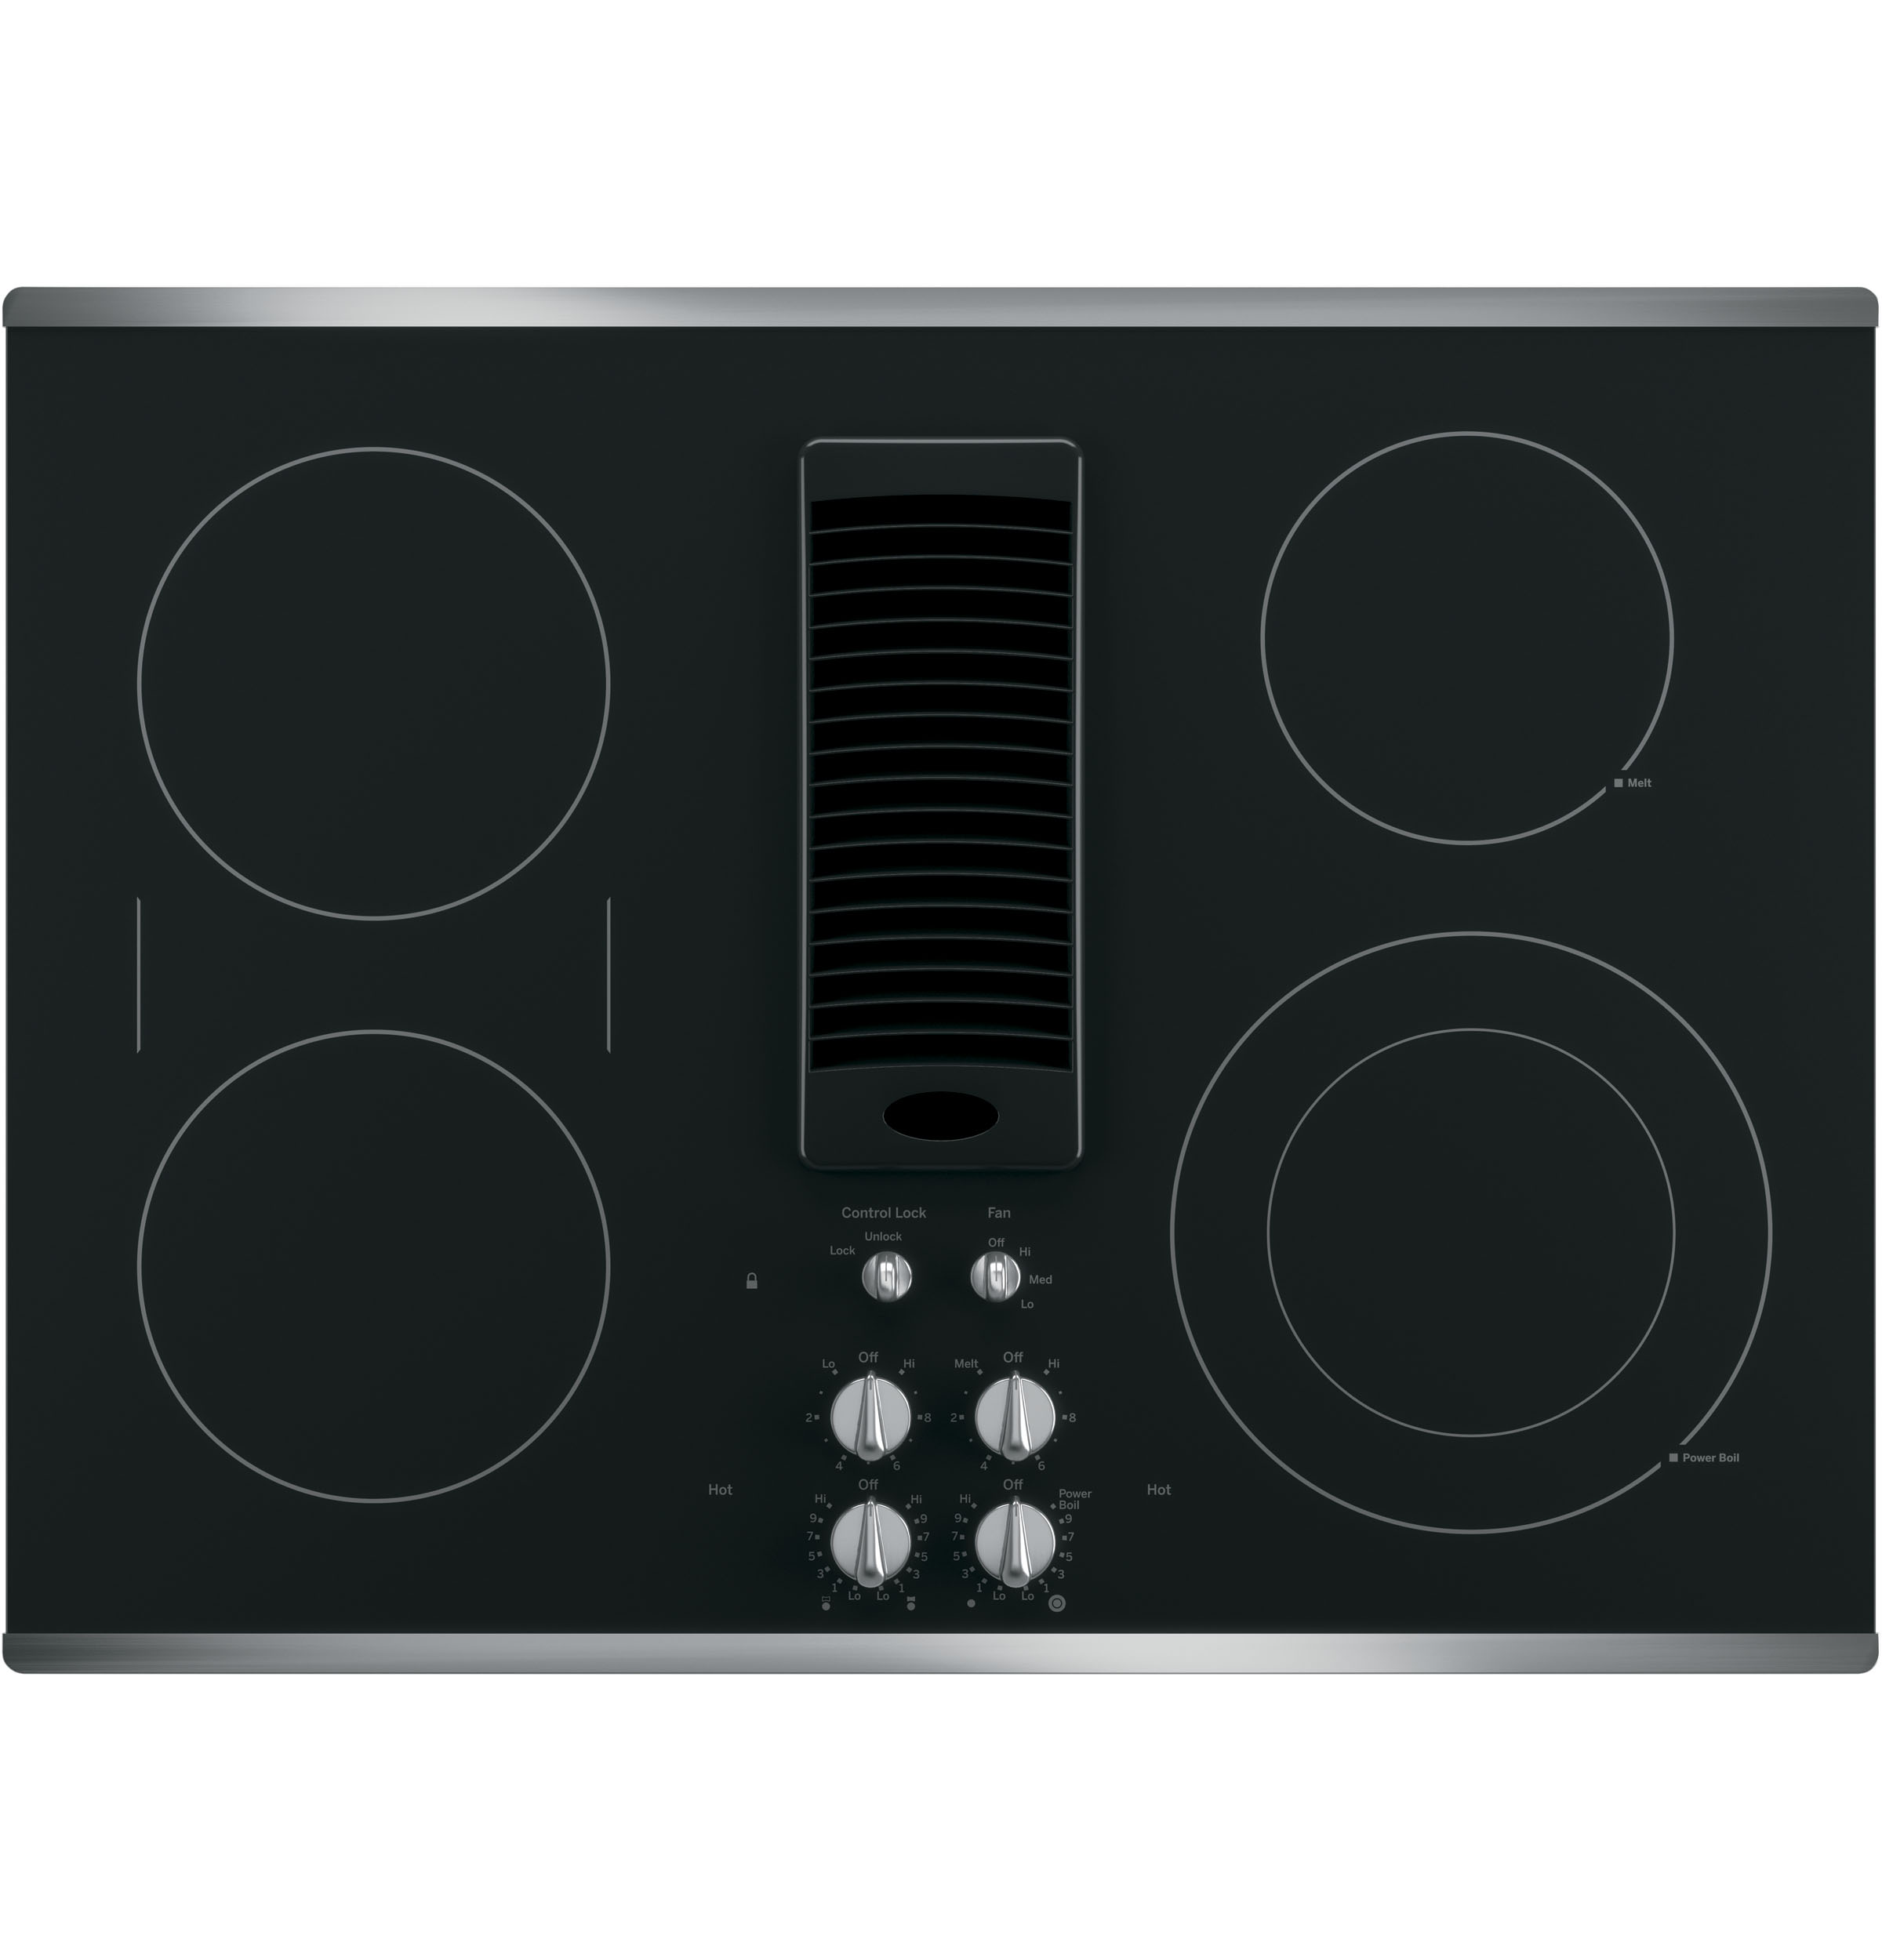 Ge Profile Series 30 Downdraft Electric Cooktop Pp9830sjss Choosing The Right Circuit Breakers At Home Depot Product Image